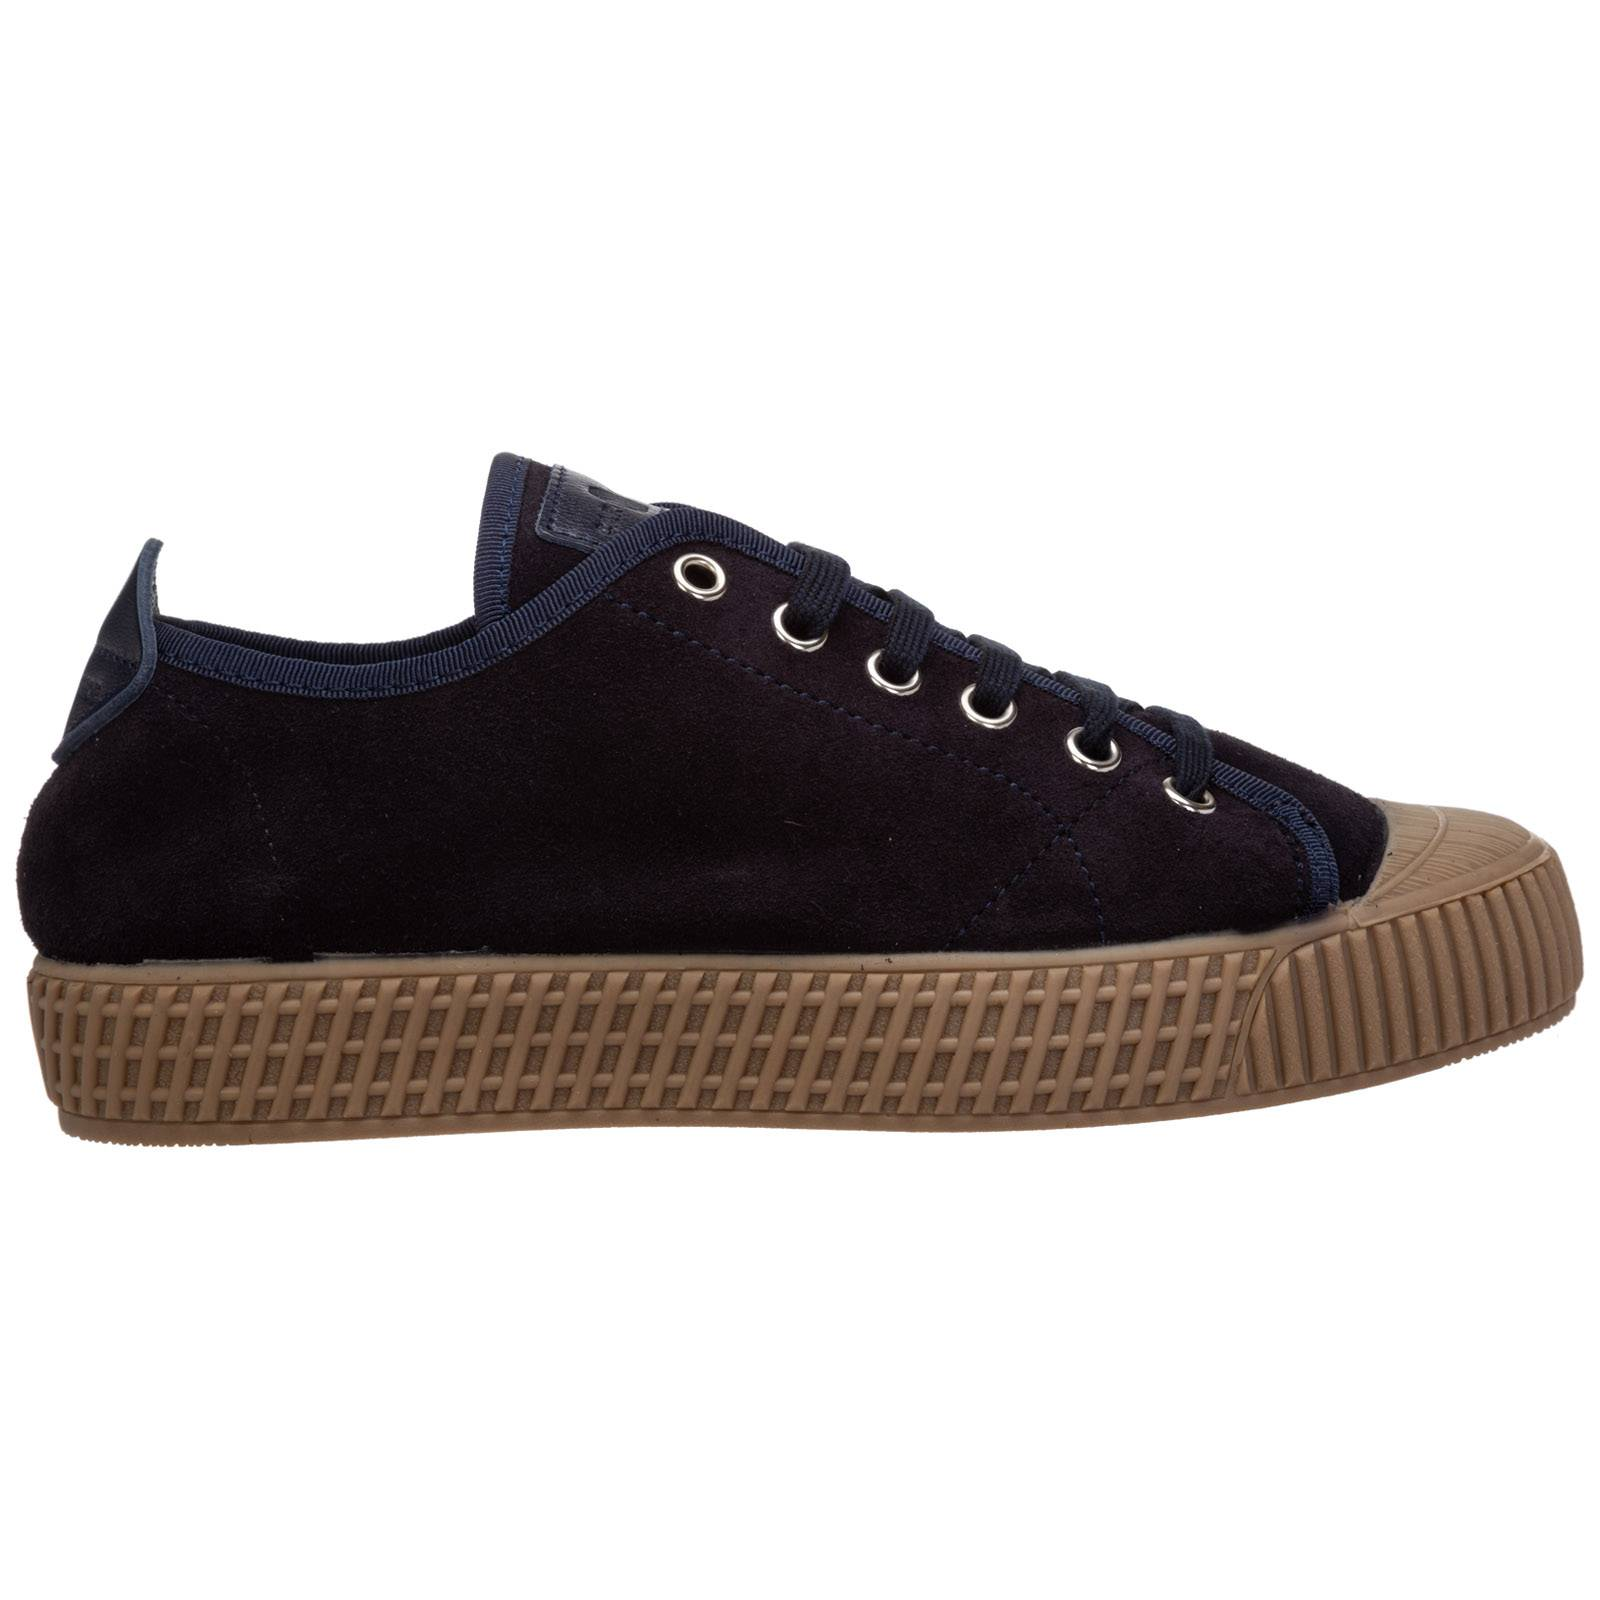 Car Shoe Women's shoes suede trainers sneakers  - Blue - Size: 39